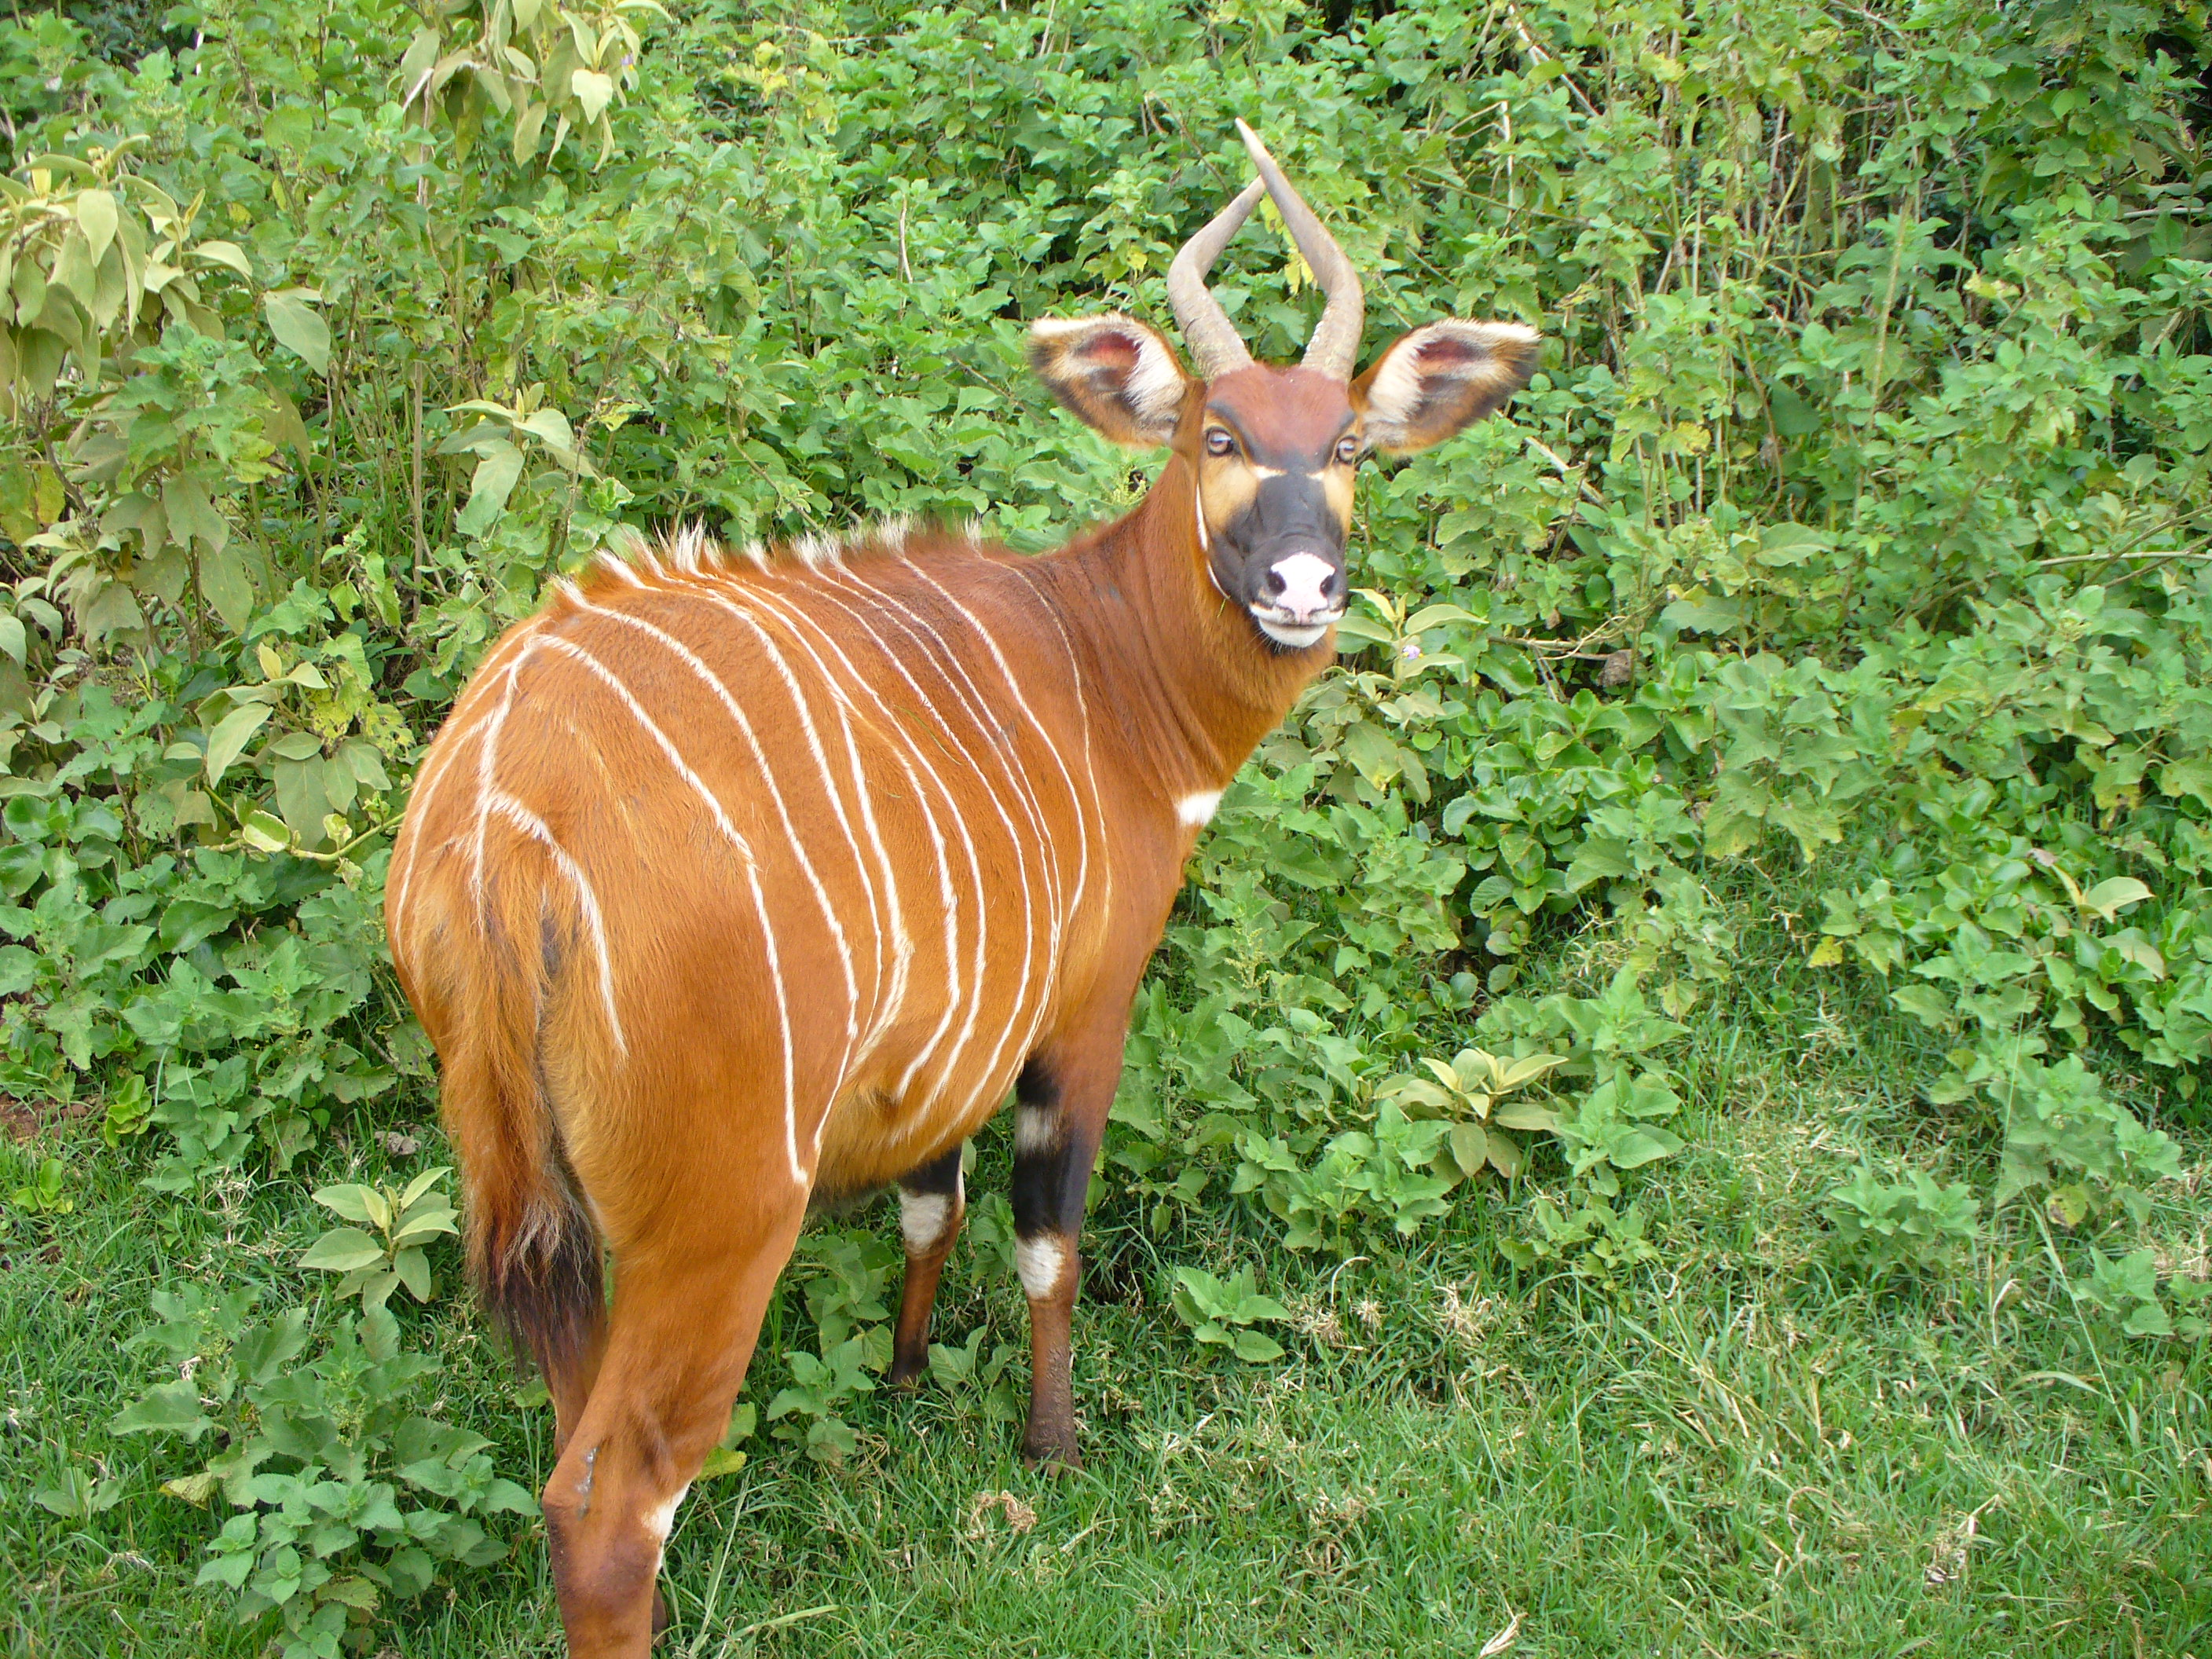 This female eastern bongo (Tragelaphus eurycerus isaaci) presents her hindquarters while looking over her shoulder to check for threats. Pphotographed at Mount Kenya National Park on March 11, 2007.